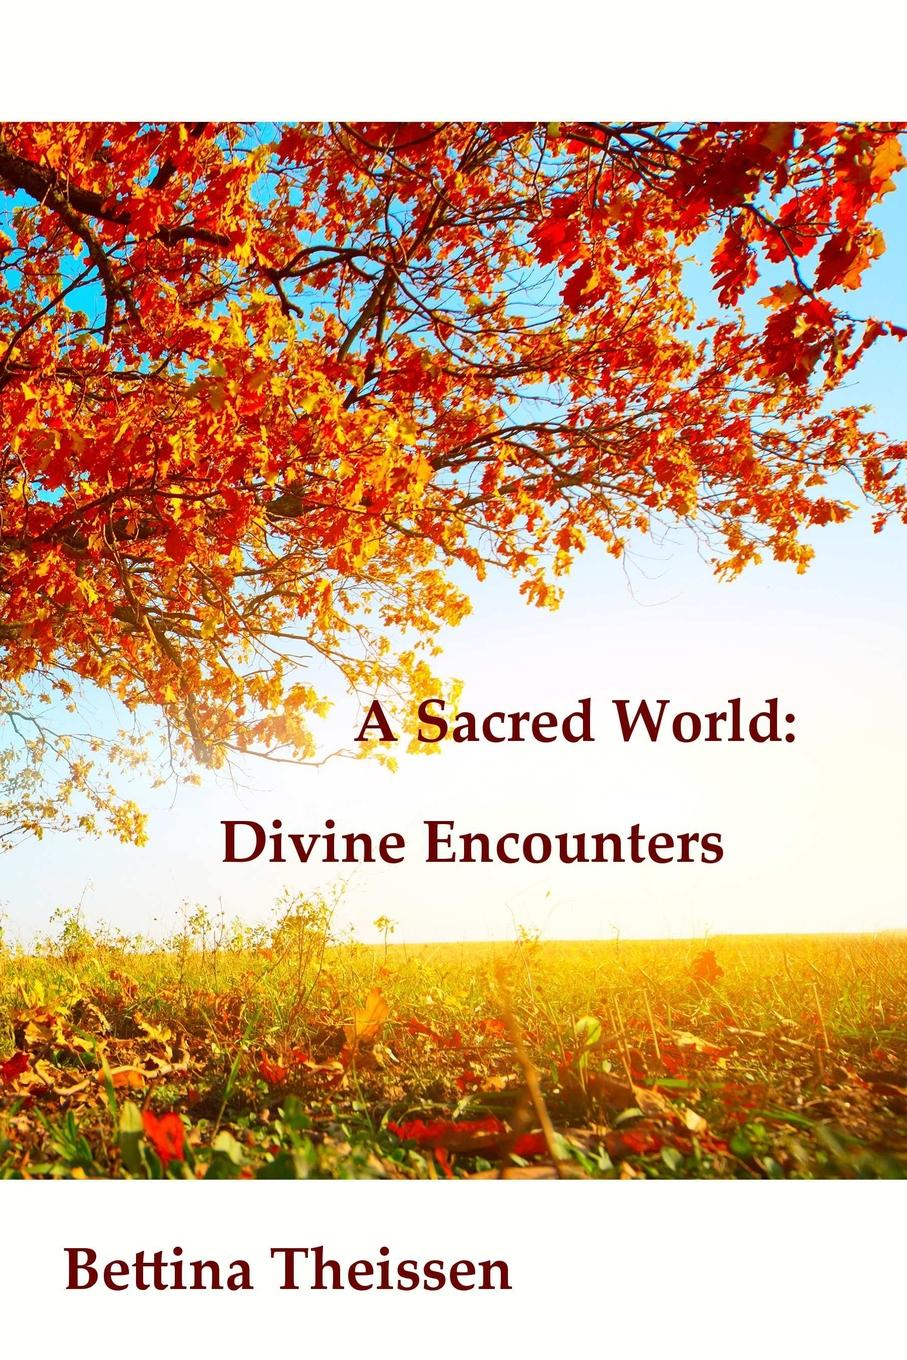 Bettina Theissen A Sacred World. Divine Encounters коллектив авторов the modern collection of sacred music